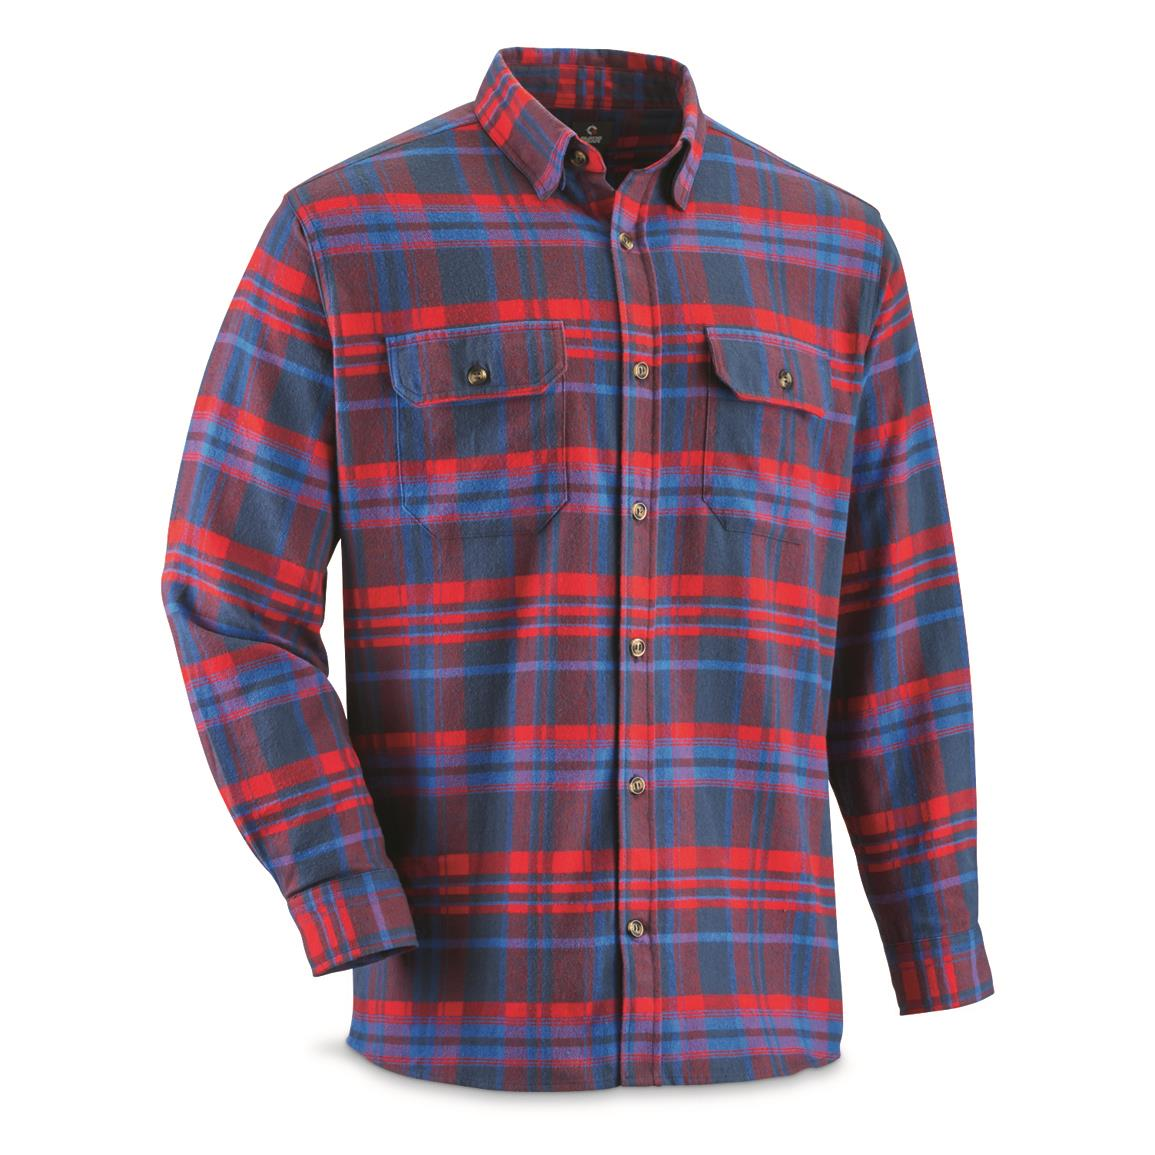 Guide Gear Men's Yarn-dyed Flannel Shirt, Red/Blue Plaid